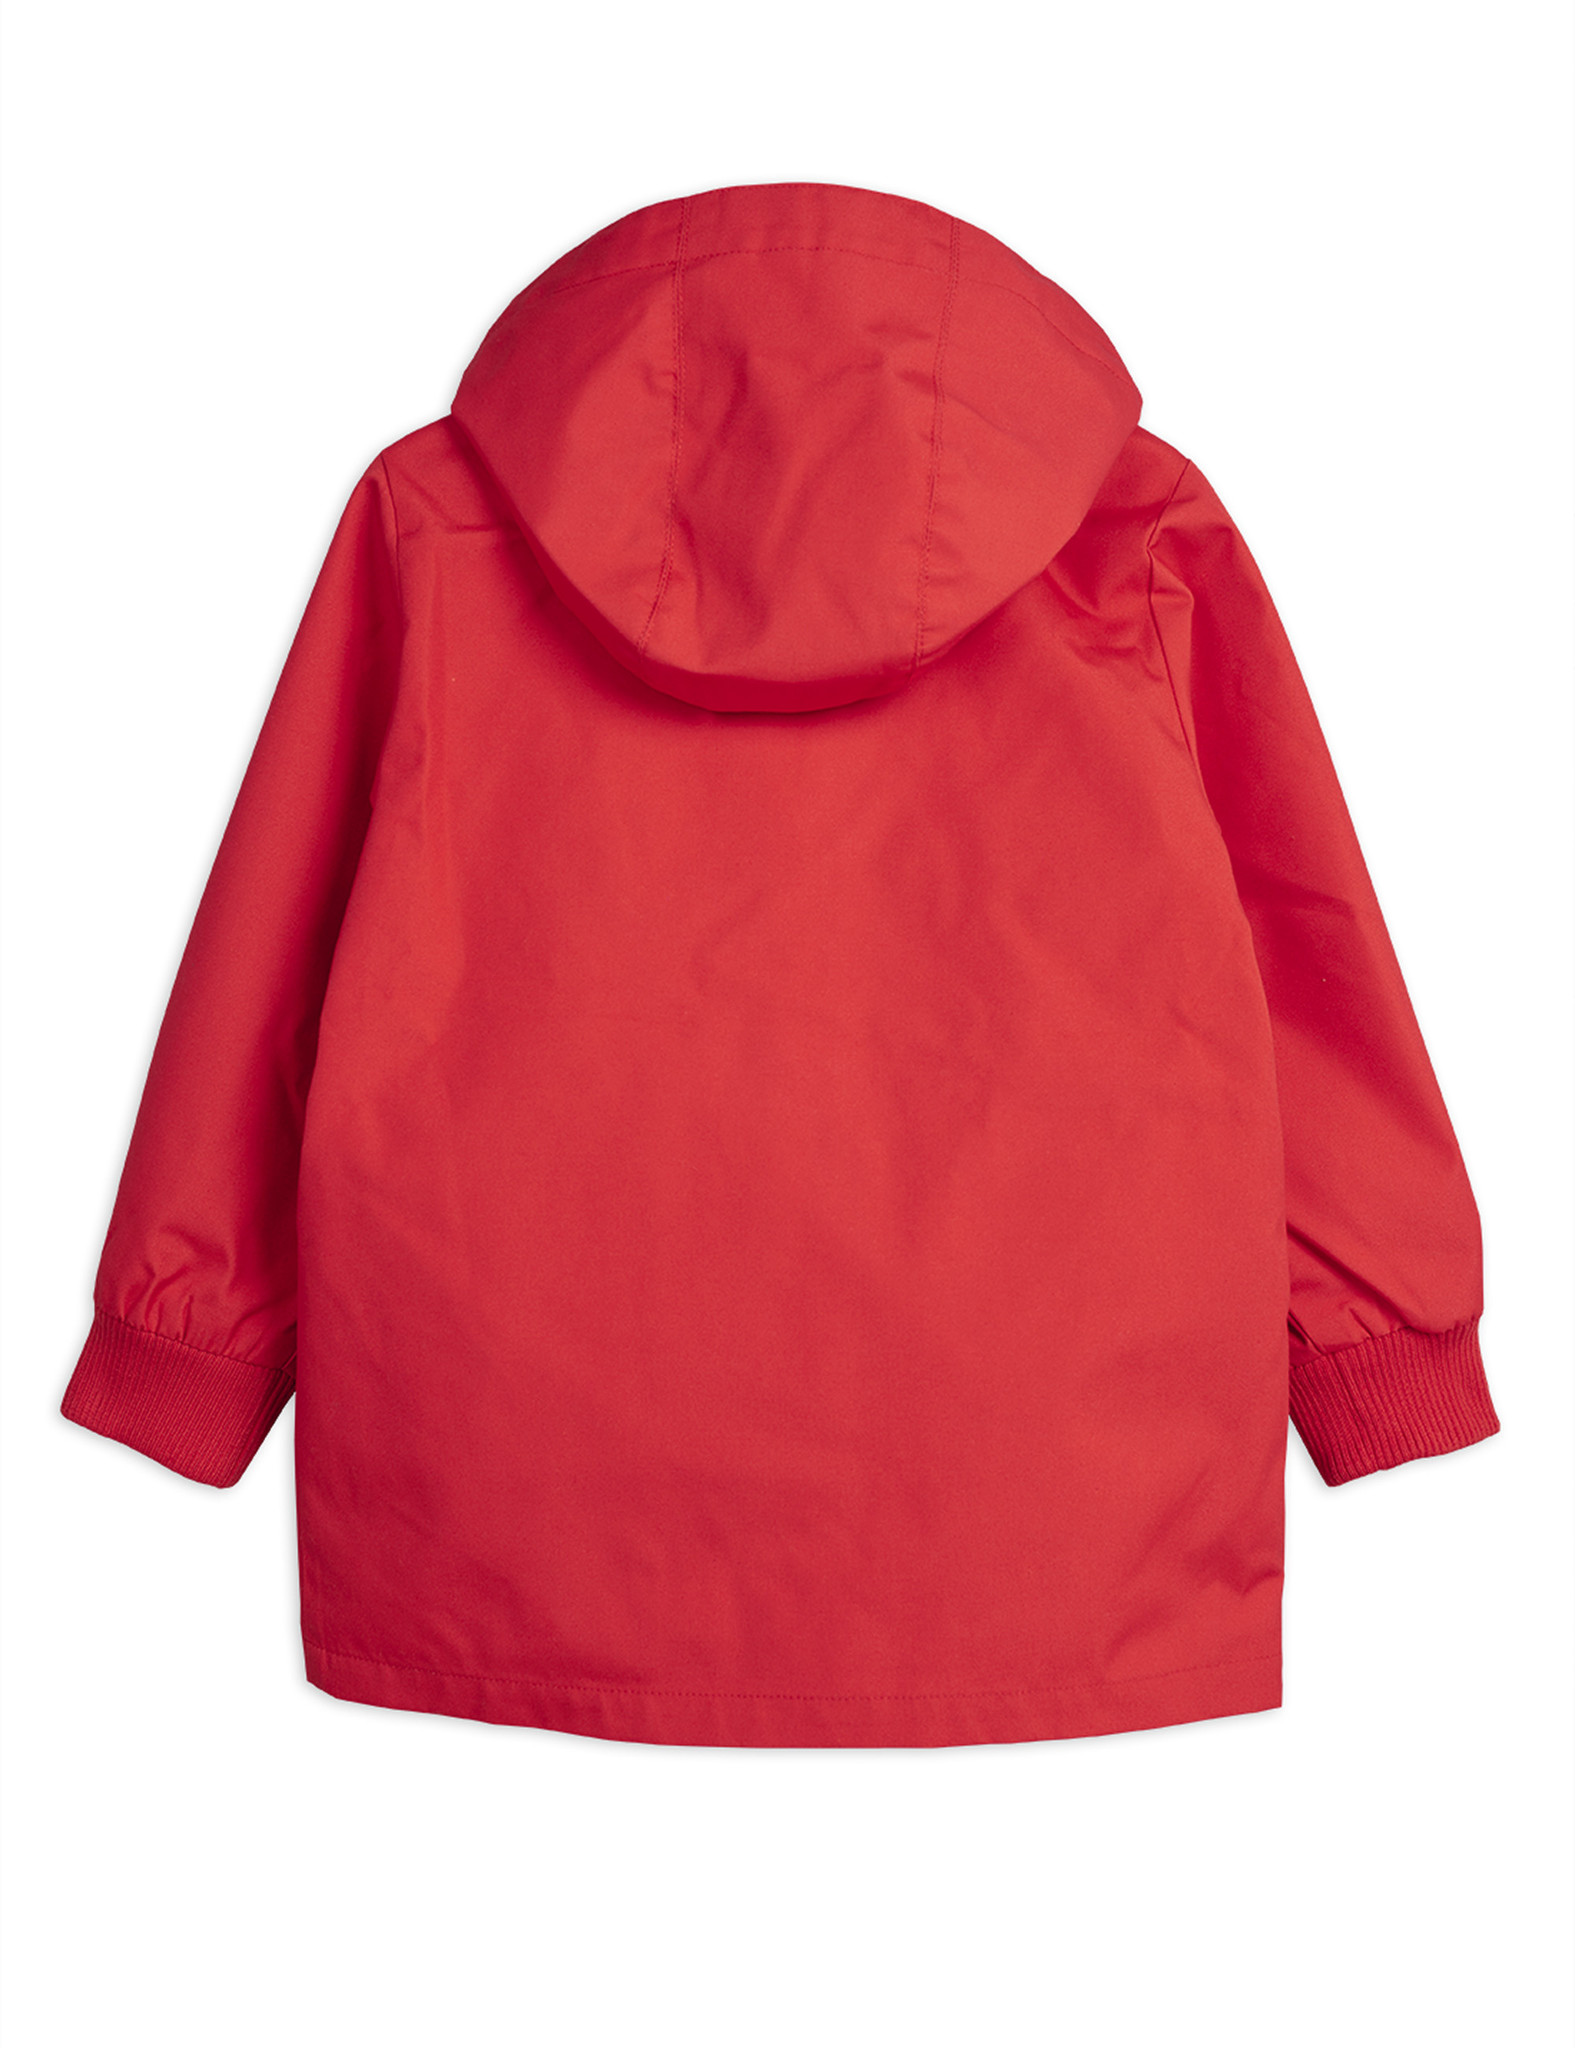 Pico jacket - Red-2